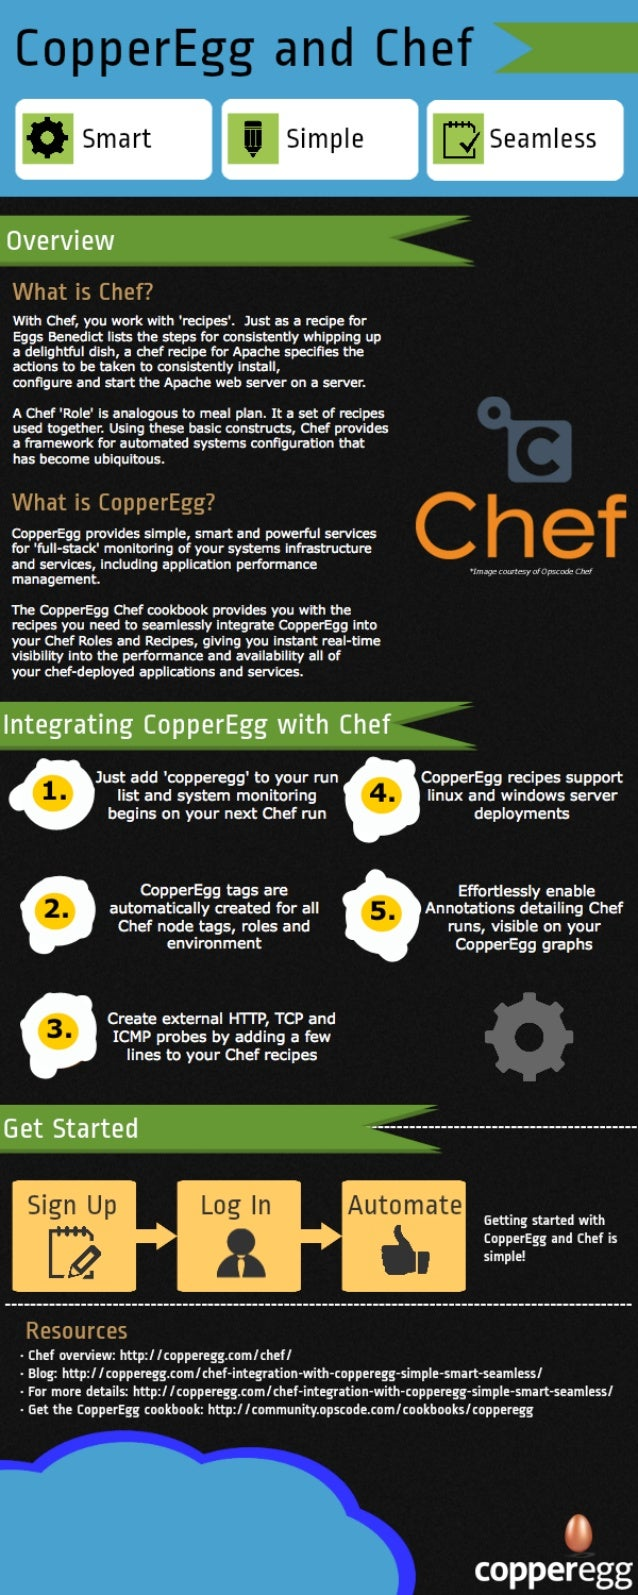 Infographic - CopperEgg and Chef Integration